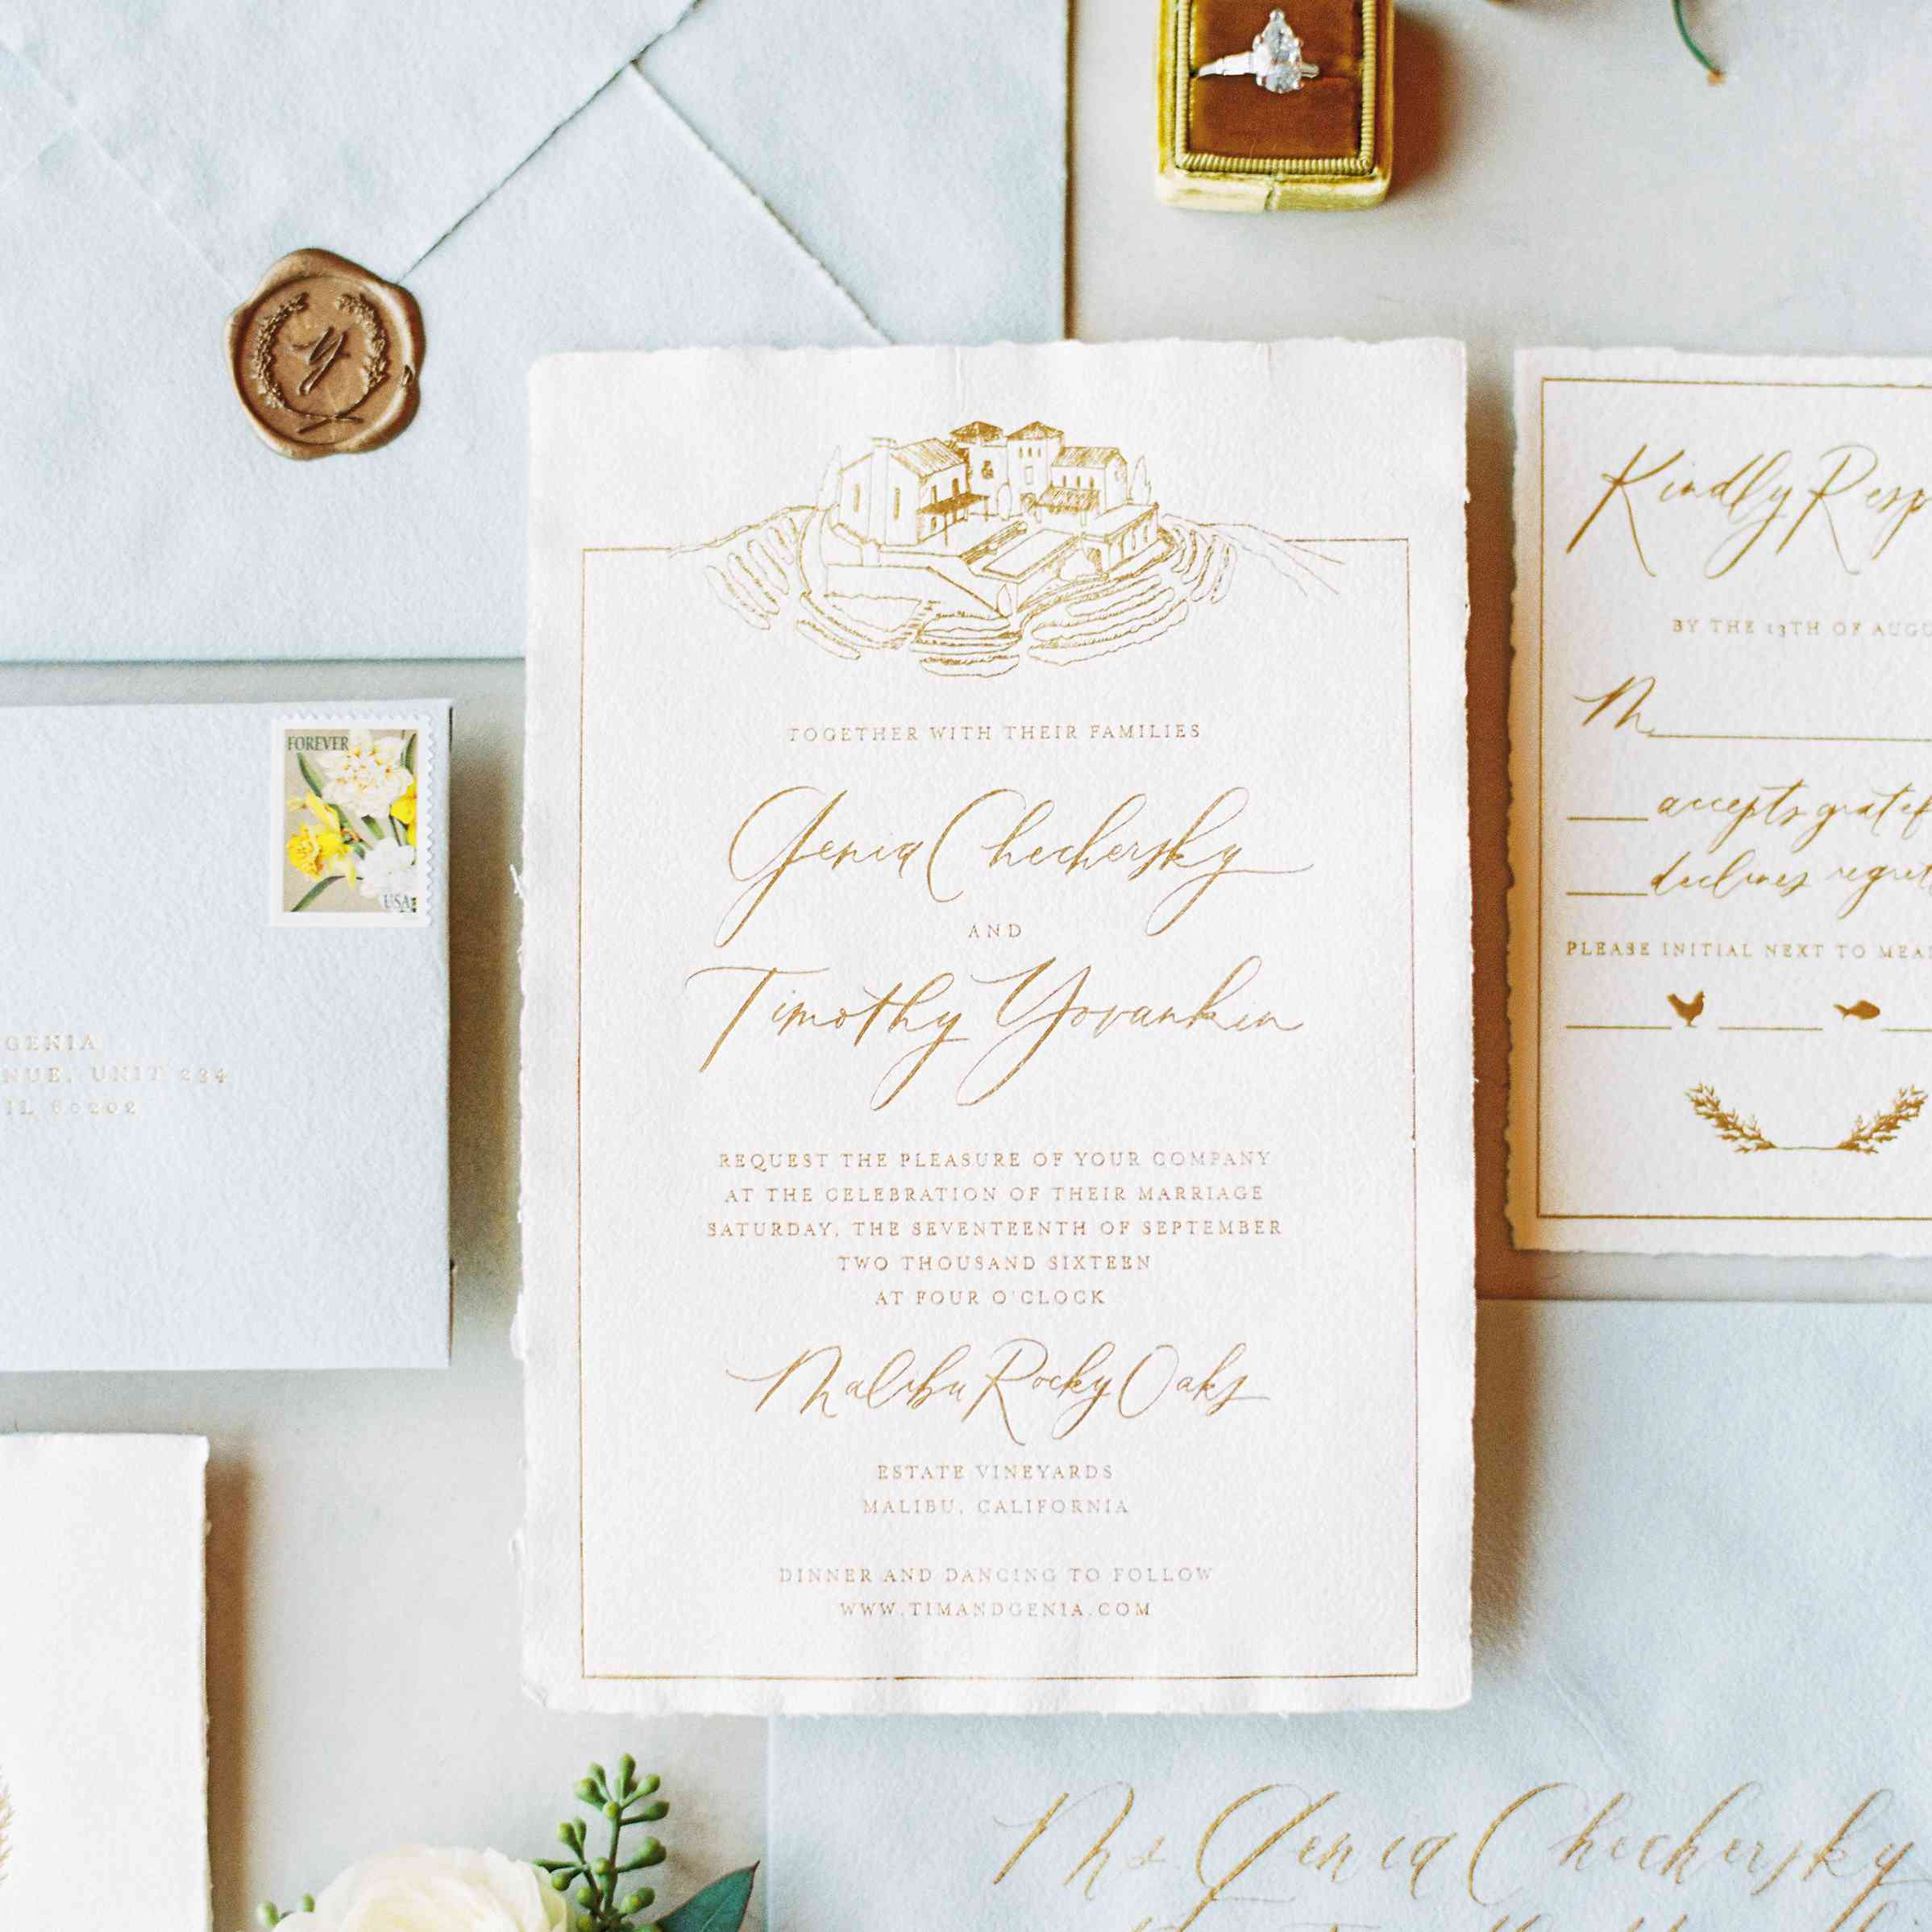 Cheap Wedding Invites.How To Print Your Own Wedding Invitations 14 Things To Know